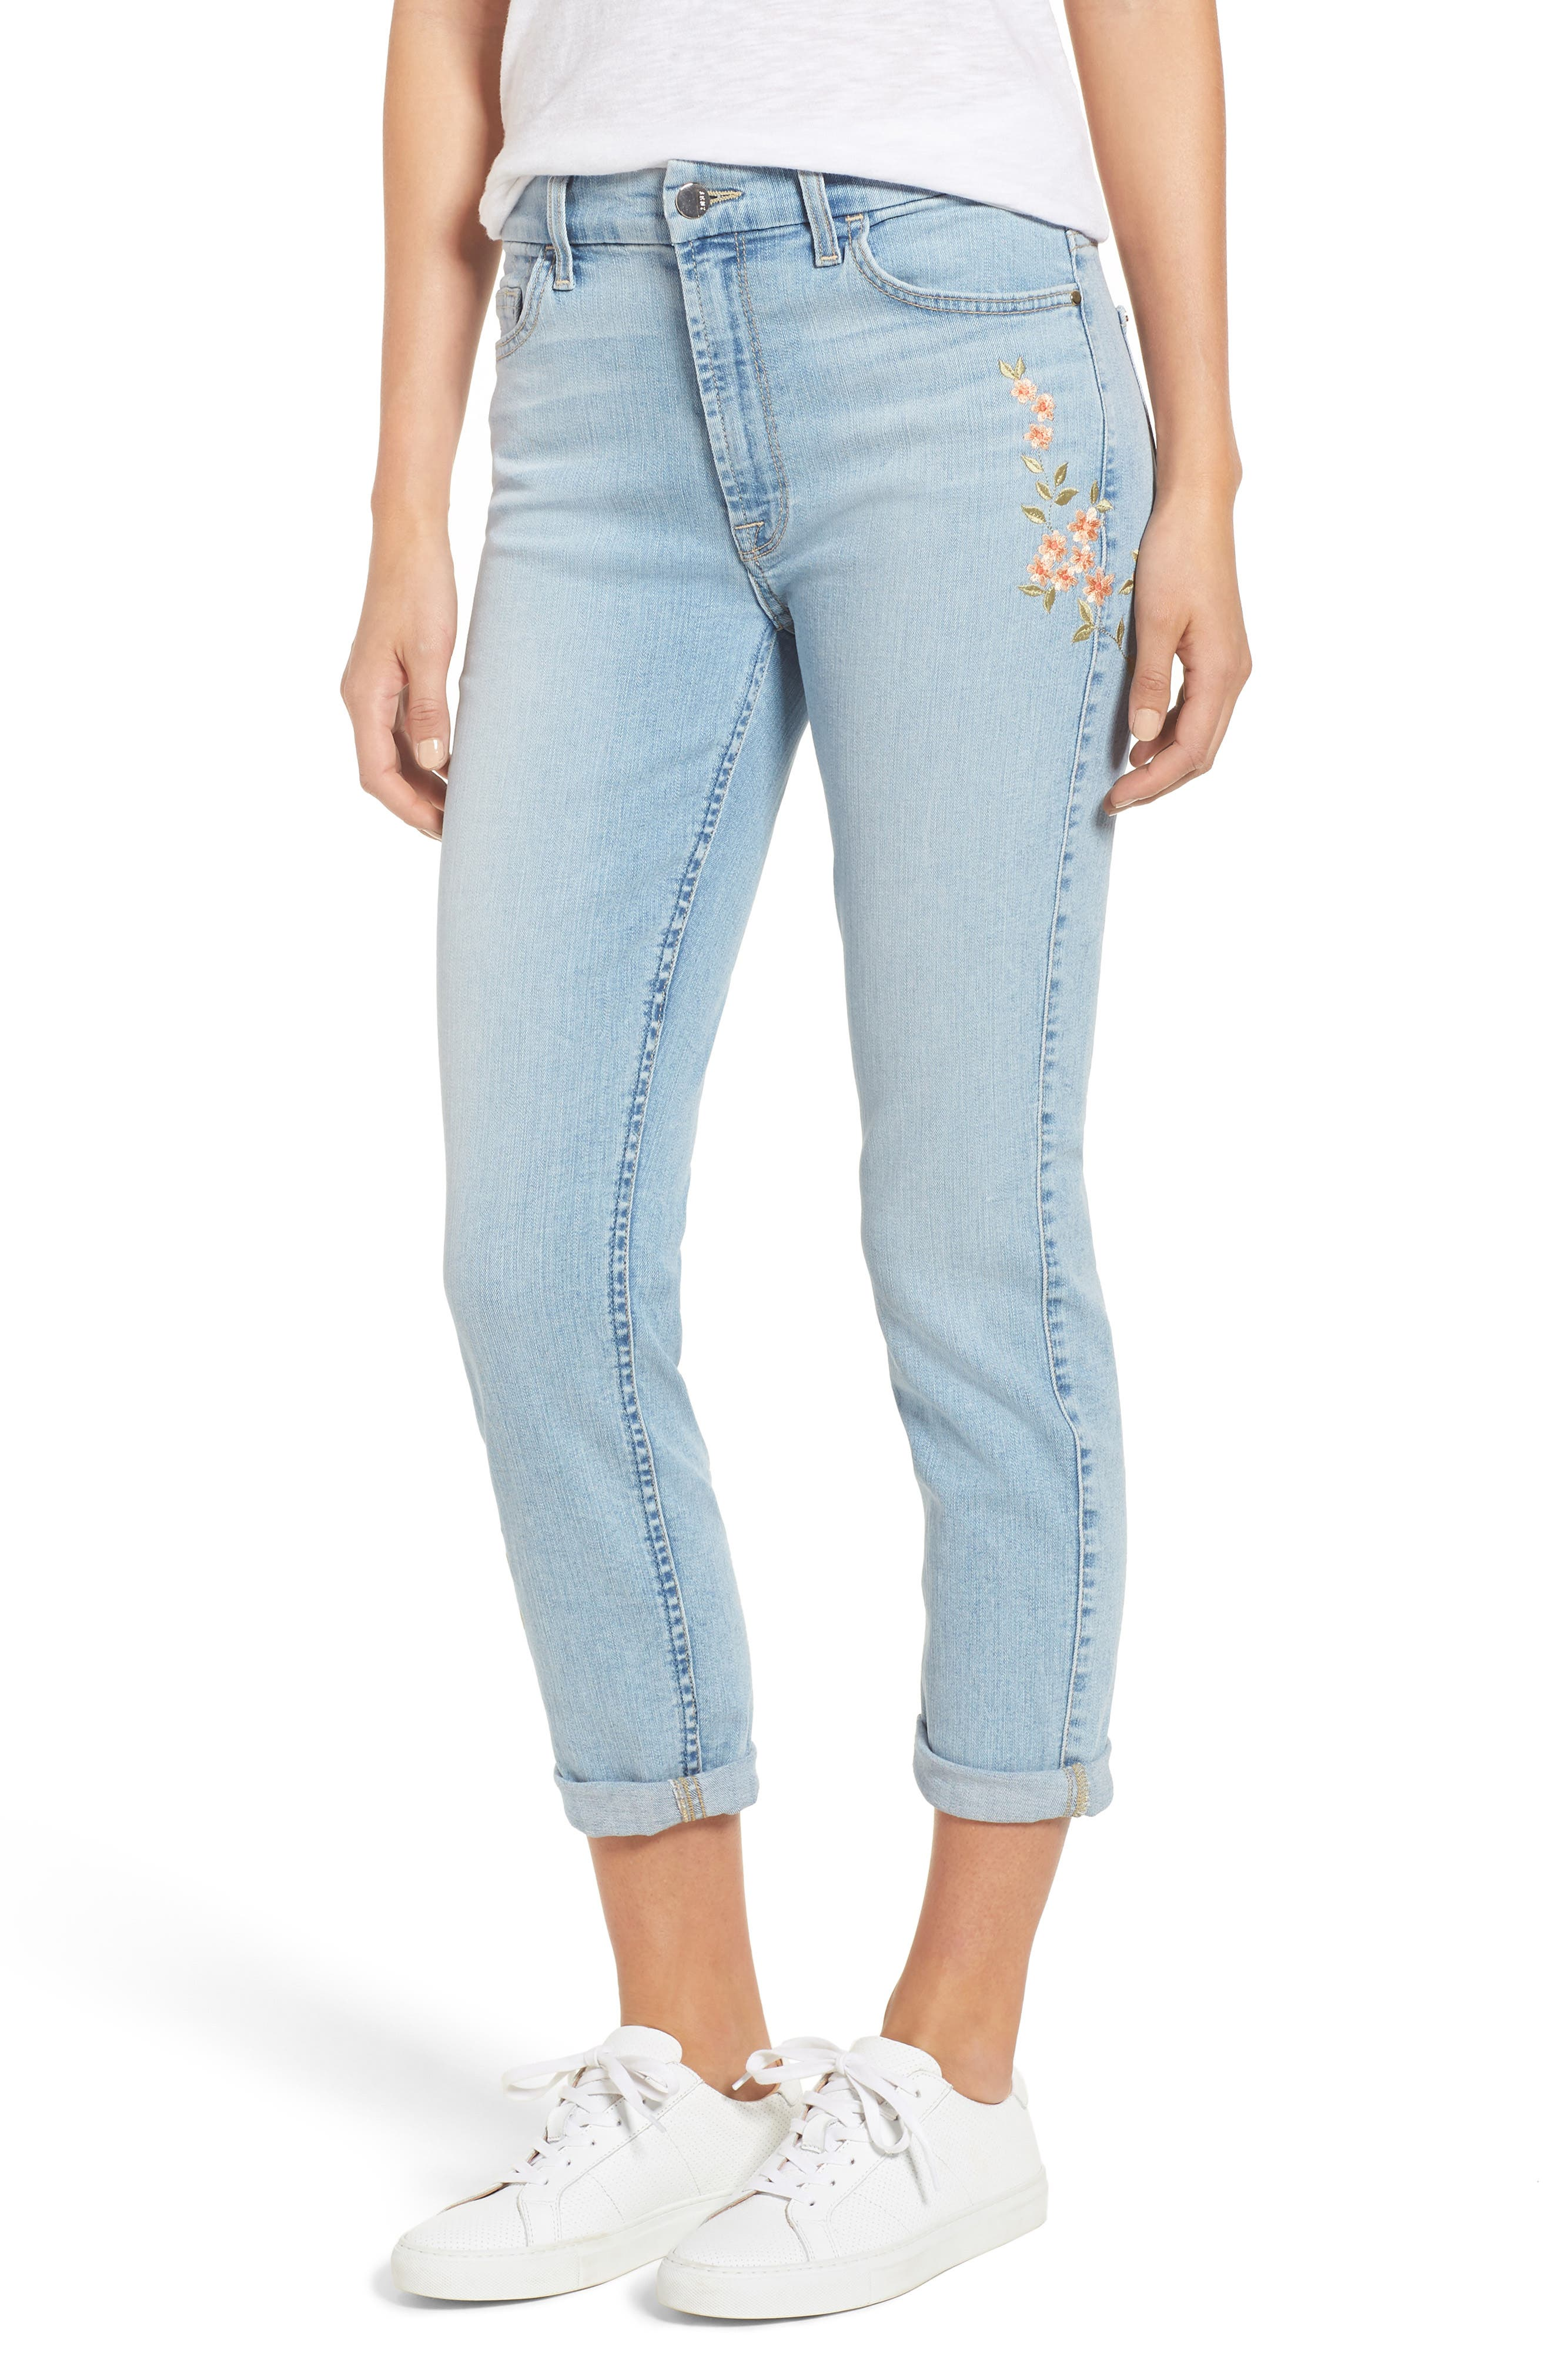 JEN7 BY 7 FOR ALL MANKIND Embroidered Slim Boyfriend Jeans, Main, color, RICHE TOUCH PLAYA VISTA